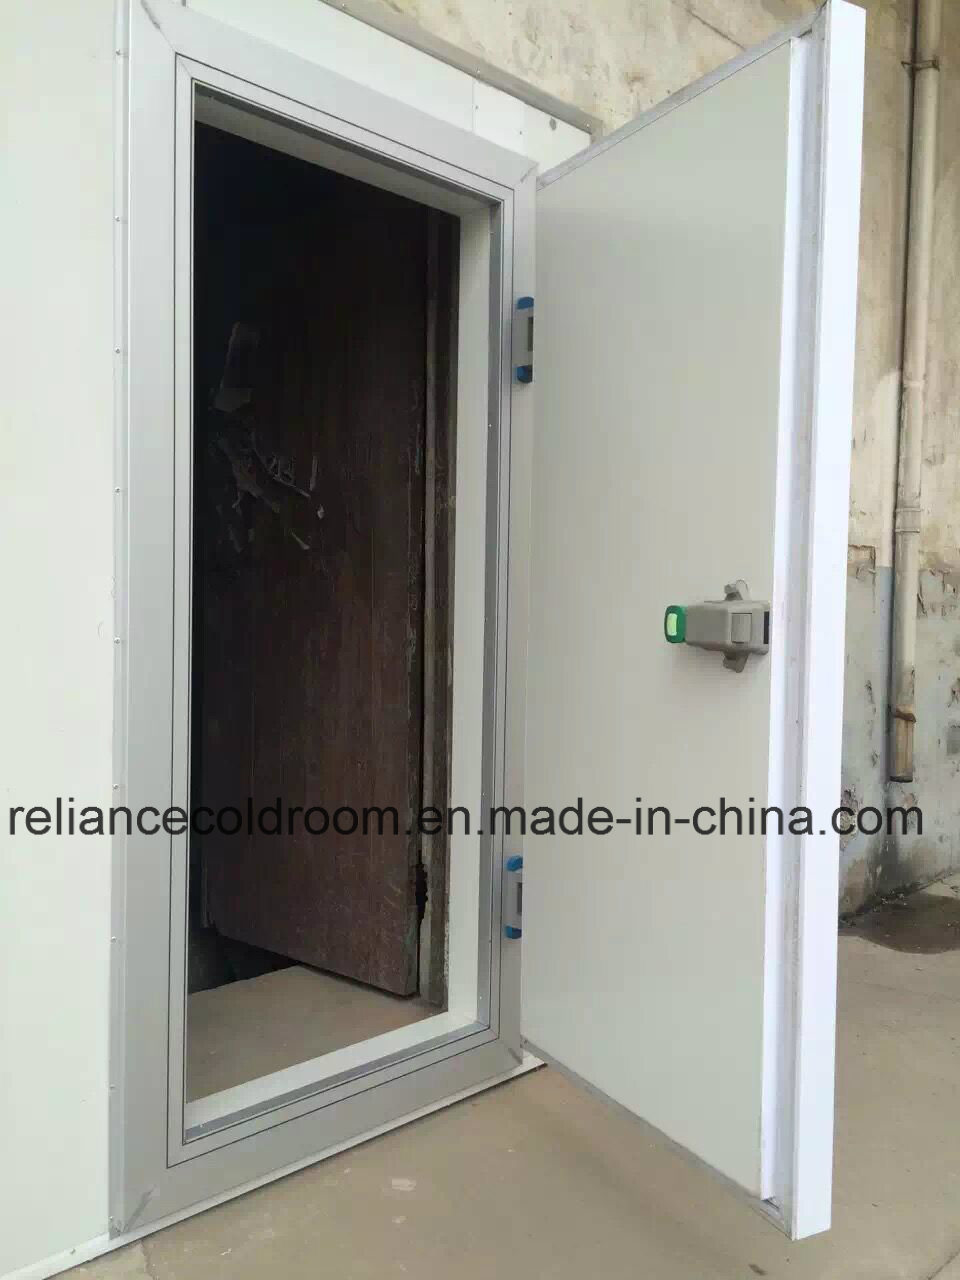 Hinged Door for Small and Medium Cold Storage Room